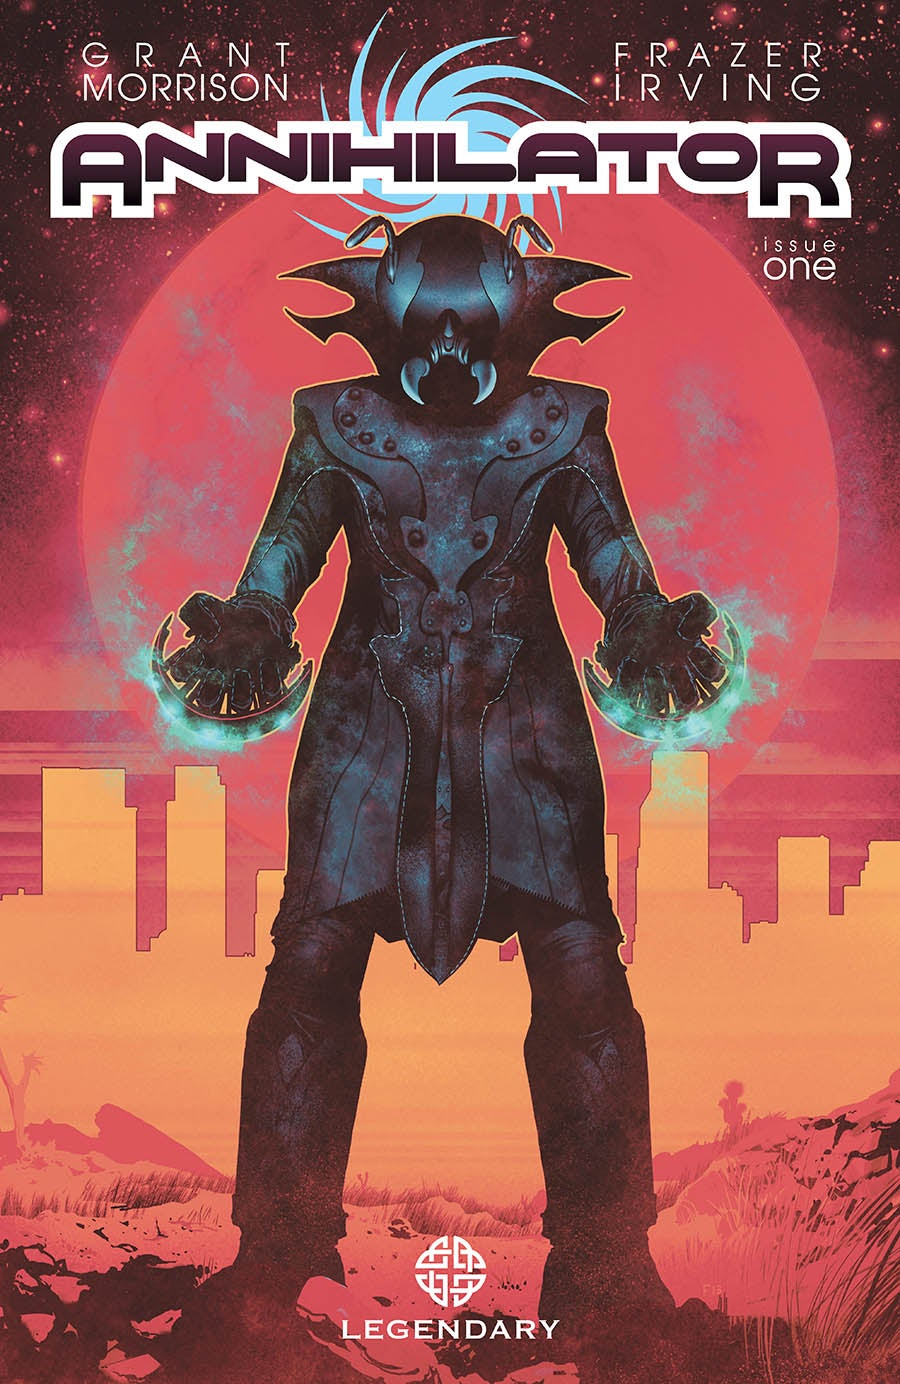 Grant Morrison's New Sci-Fi Comic Is About How F***ed-Up Hollywood Is